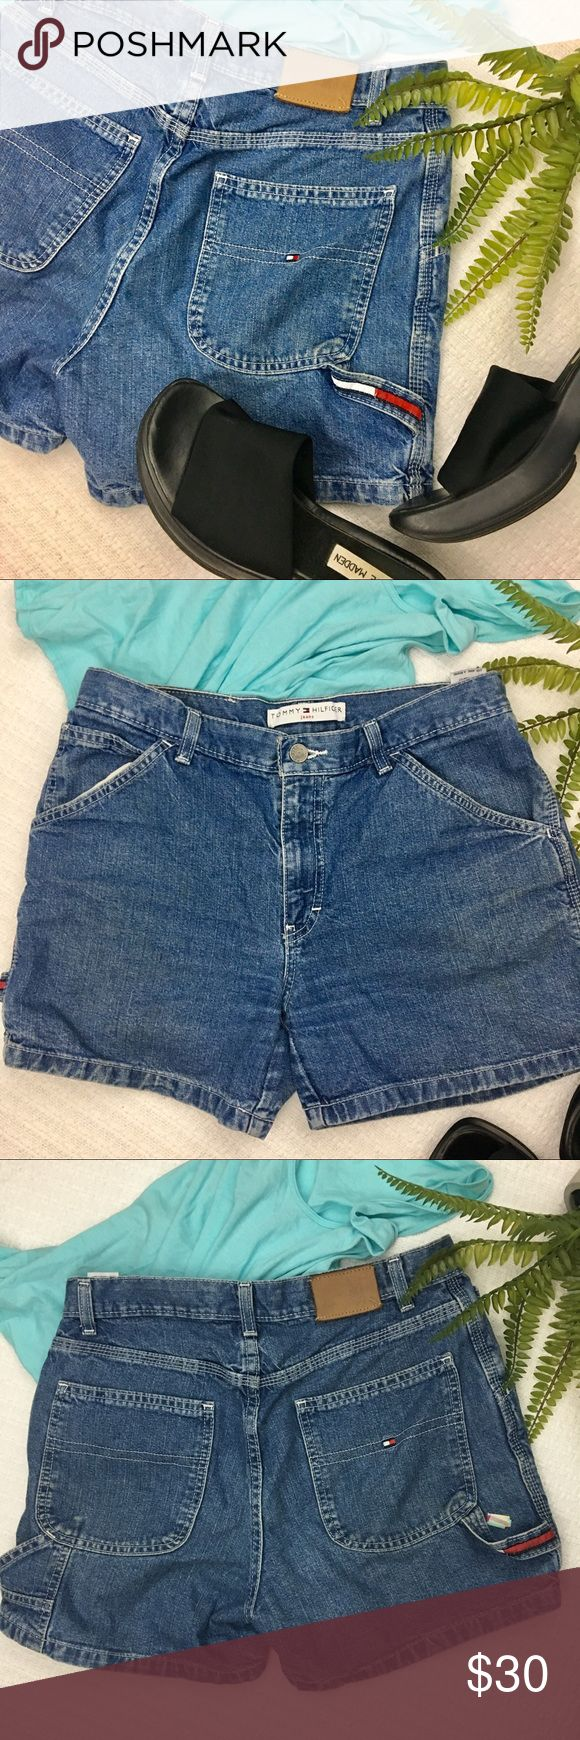 Vintage Tommy Hilifiger High Waisted Shorts Super cute vintage Tommy Hilifiger high waisted shorts! Good used condition, the back label has come off but there are still two Tommy labels on the back so people will still be able to tell they're Tommy Hilifiger 😘 The wash on the thighs are a little faded, I wasn't sure if that was intentional or from wear but I thought I'd point that out. Measurements are shown in the picture!💕 Tommy Hilfiger Shorts Jean Shorts